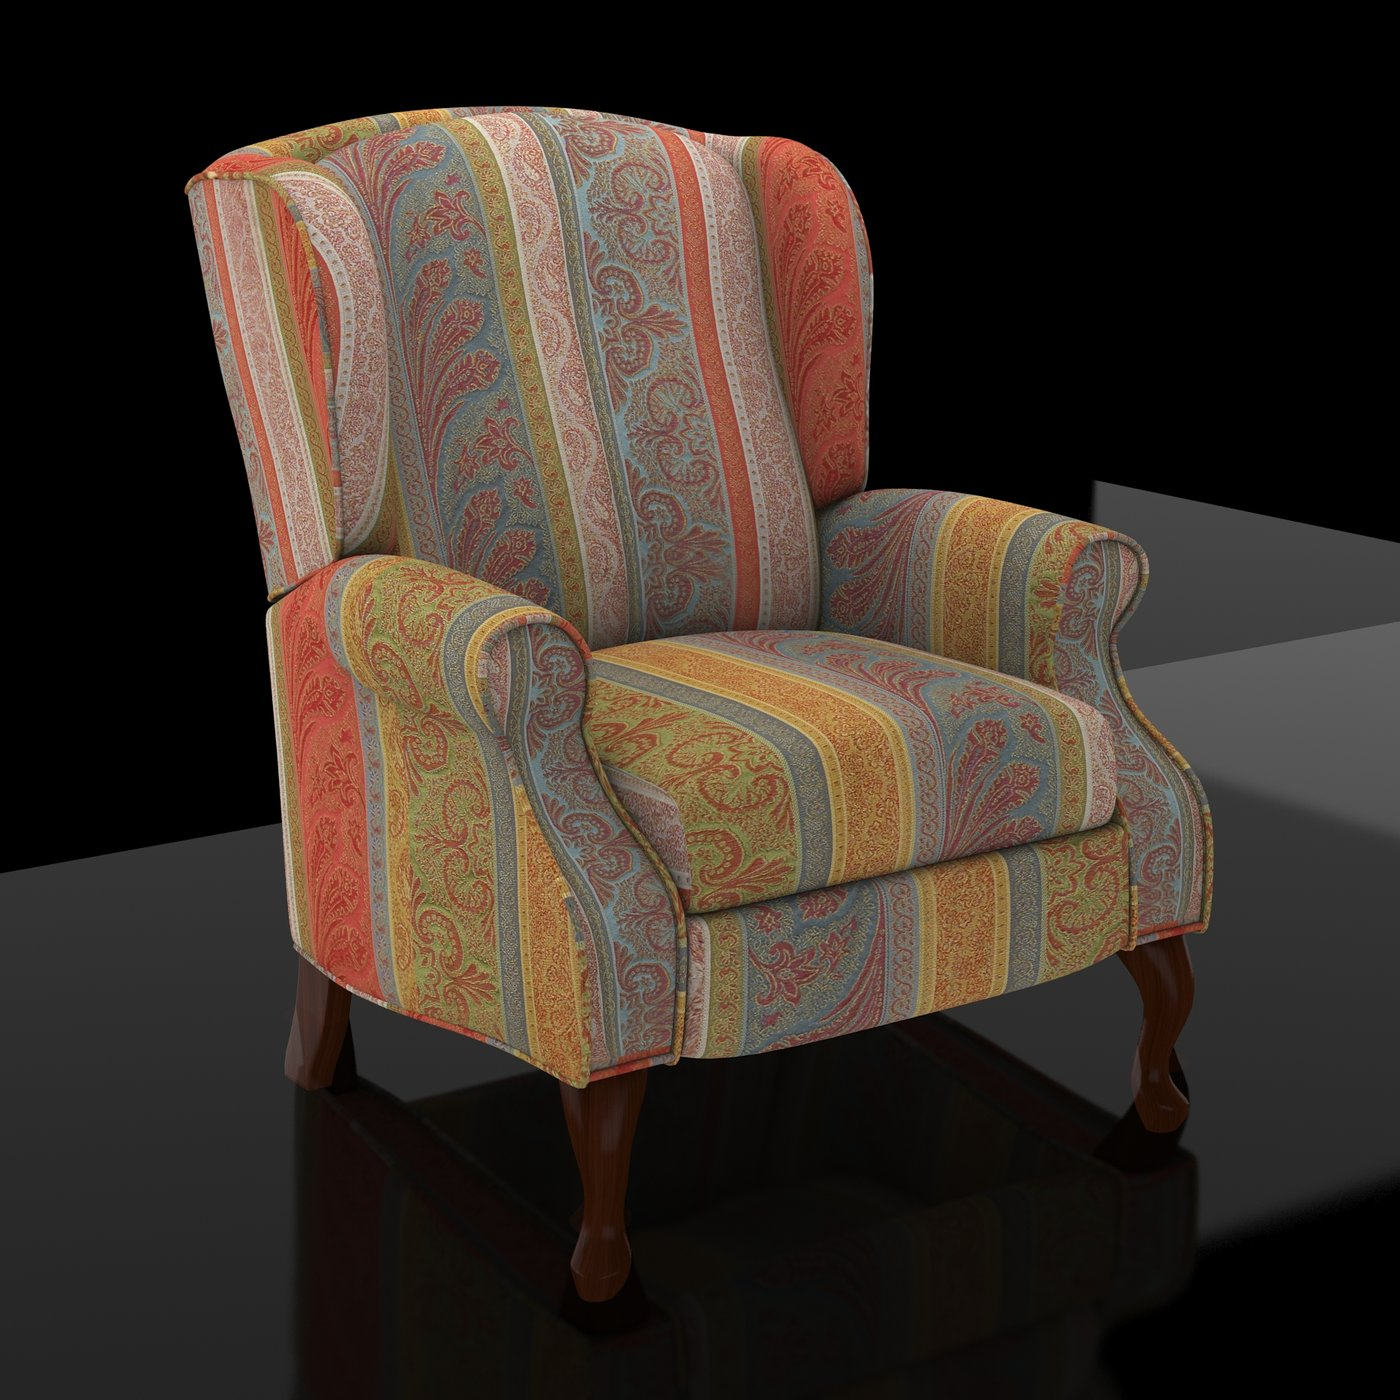 Sofa-with-striped-fabric-Design-Materials-Lights-Rendering-3DSMAX-VrayNext